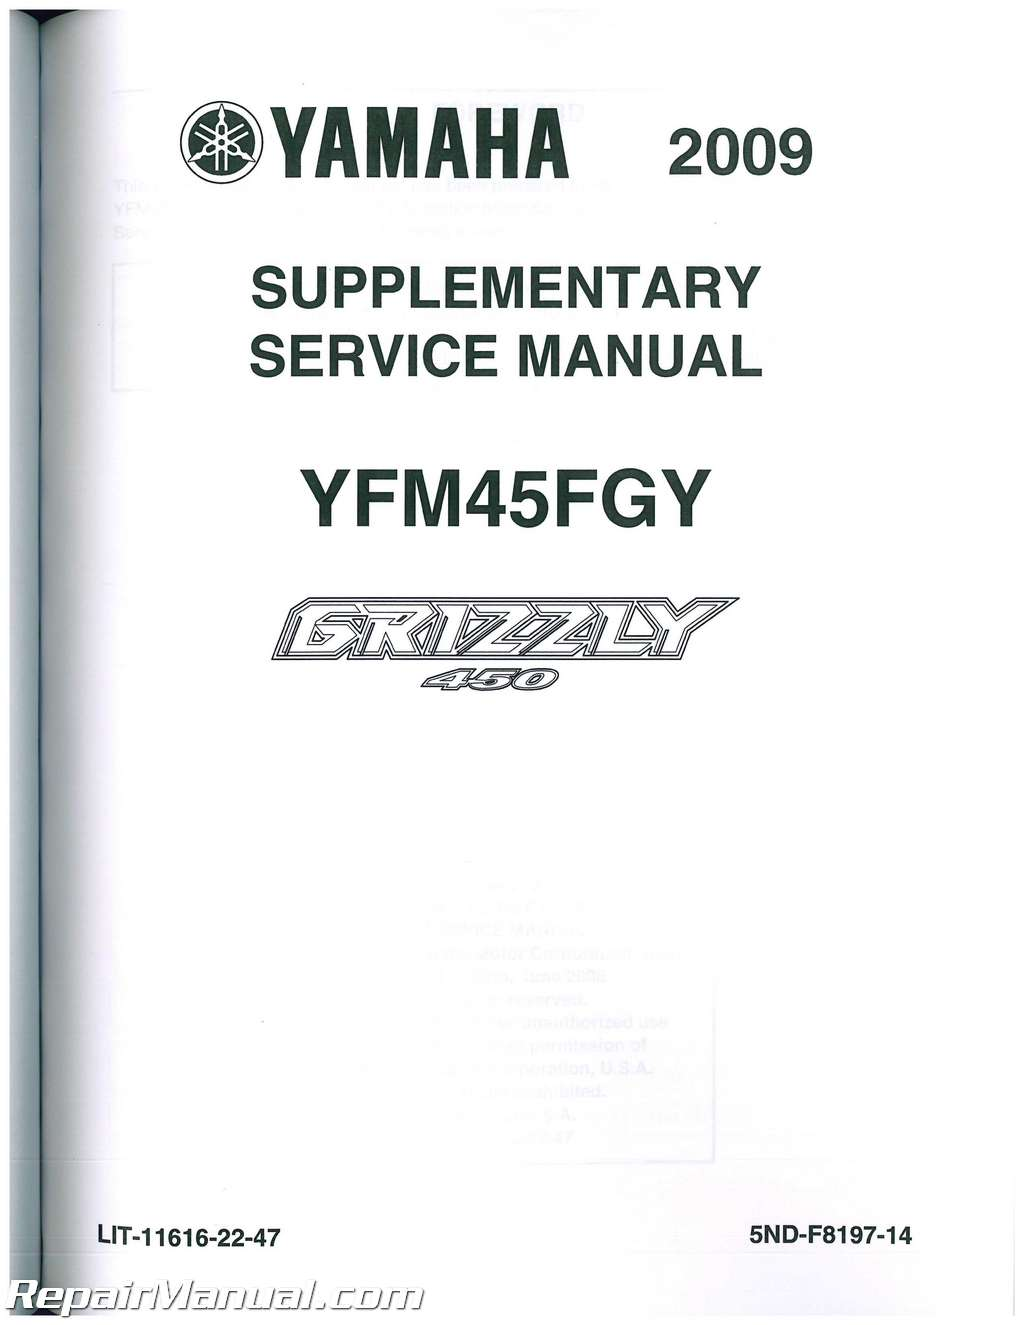 Yfm450f yamaha kodiak 450 atv service manual 2003-2004.